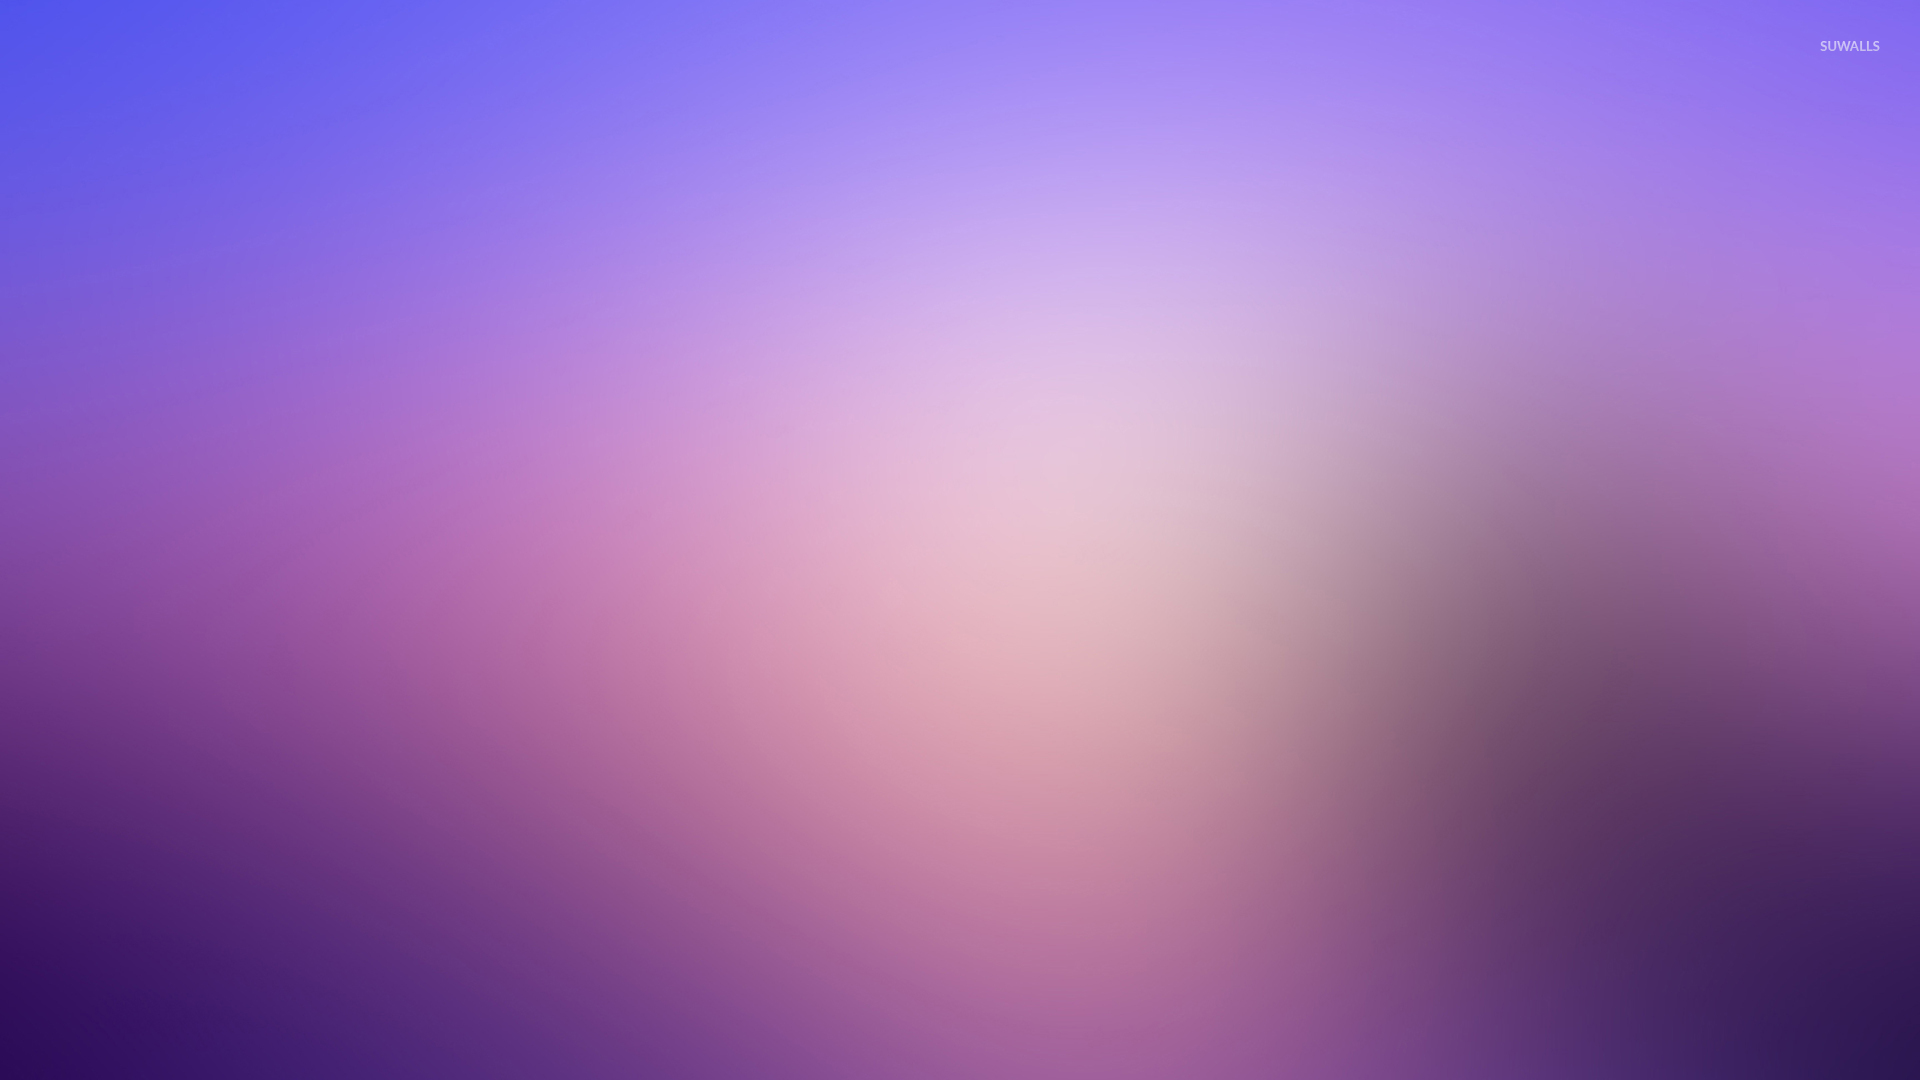 Game Of Thrones Quotes Desktop Wallpaper Shades Of Purple In The Blur Wallpaper Minimalistic